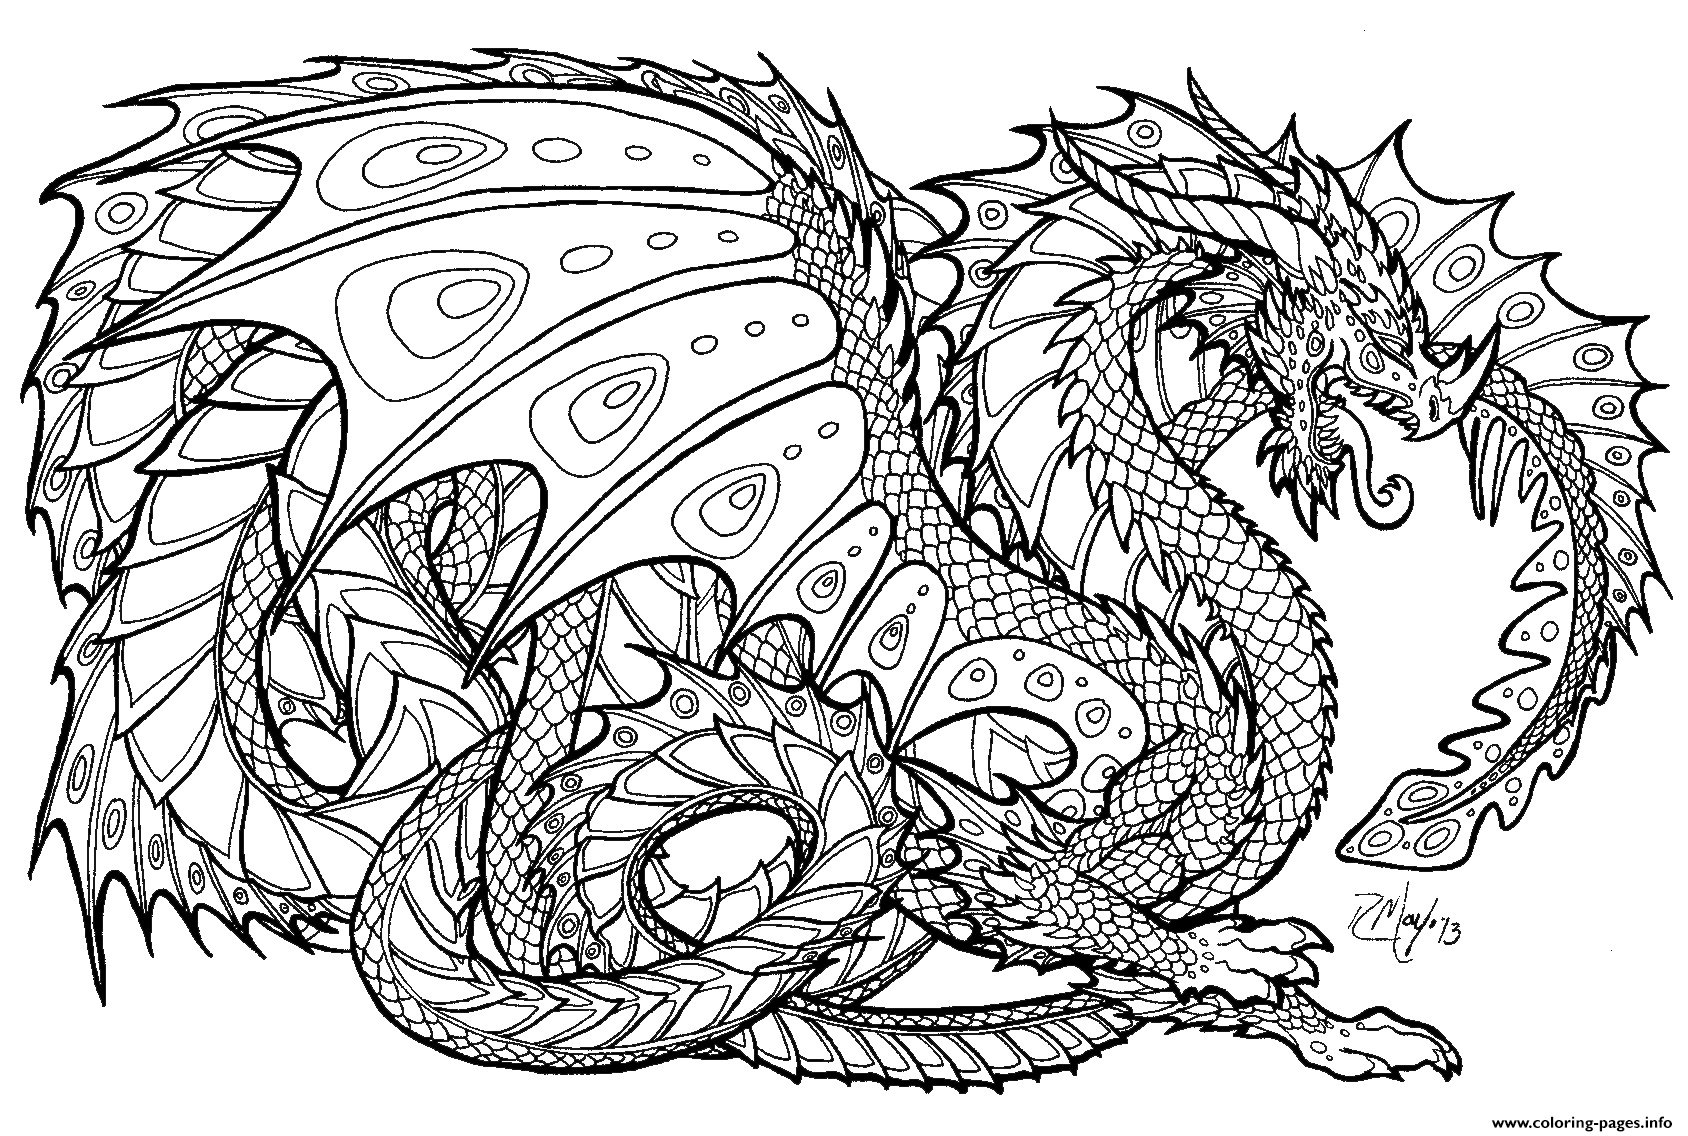 New Free Printable Chinese Dragon Coloring Pages | Coloring Pages - Free Printable Chinese Dragon Coloring Pages